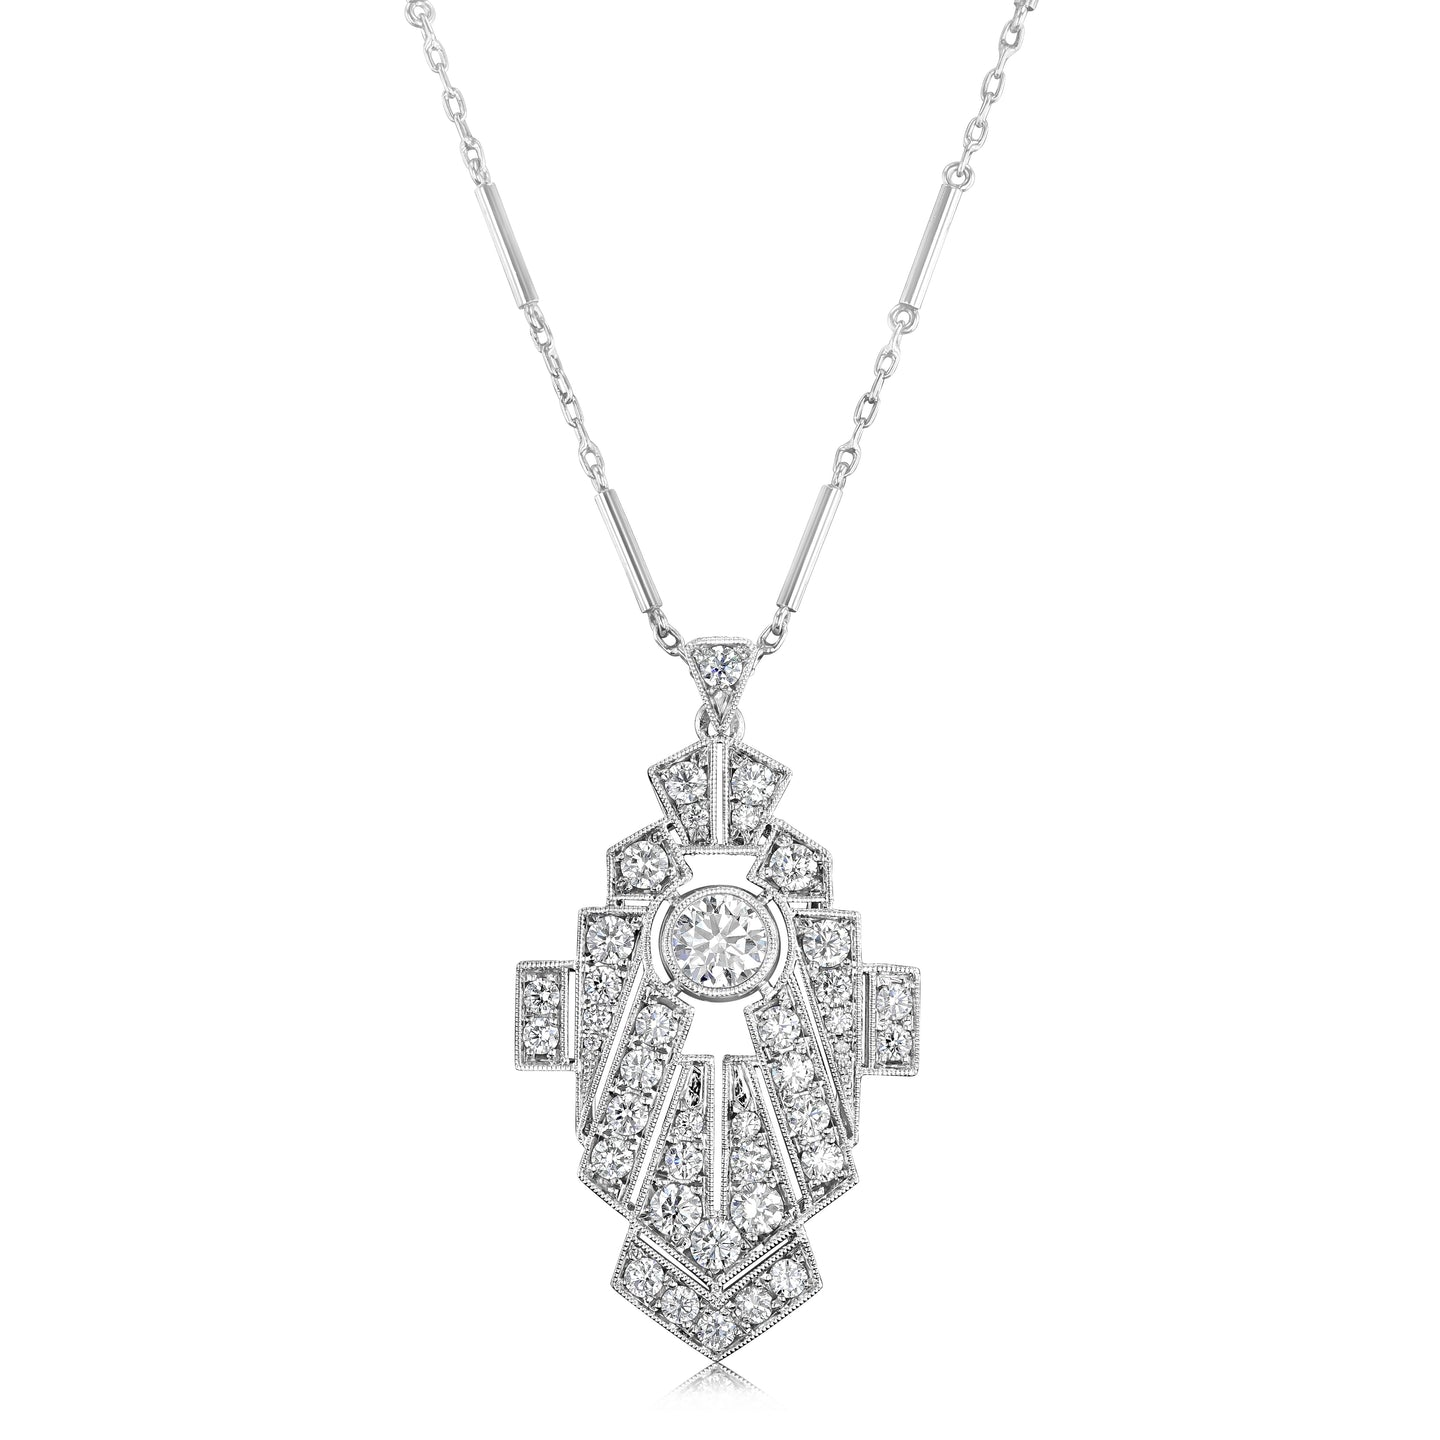 Art Deco Pendant Necklace - Best & Co.